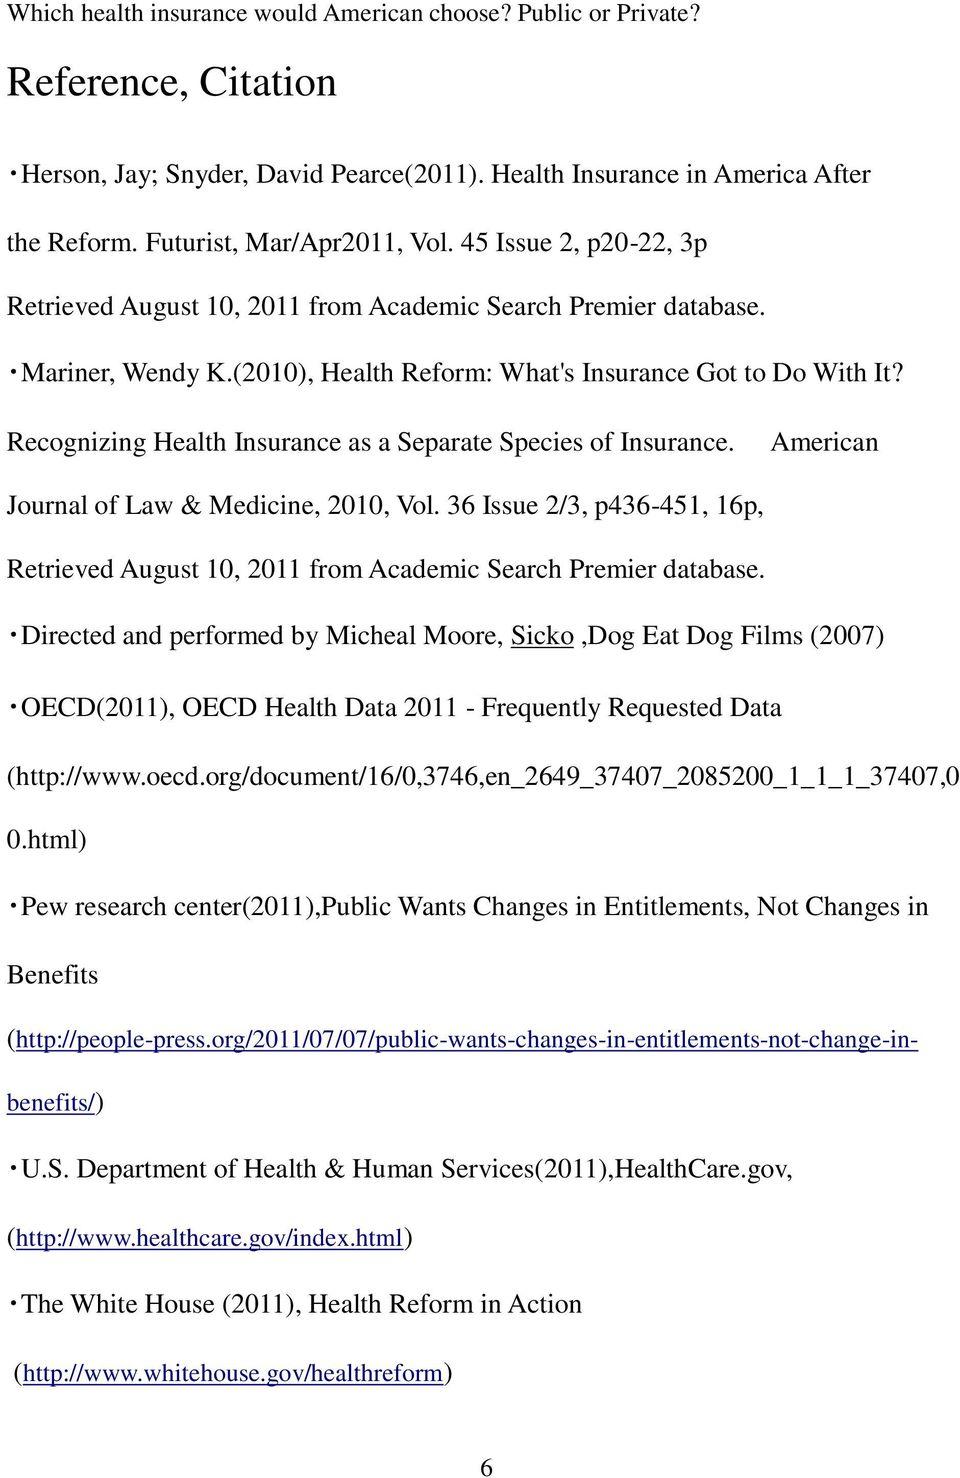 Recognizing Health Insurance as a Separate Species of Insurance. American Journal of Law & Medicine, 200, Vol. 36 Issue 2/3, p436-45, 6p, Retrieved August 0, 20 from Academic Search Premier database.